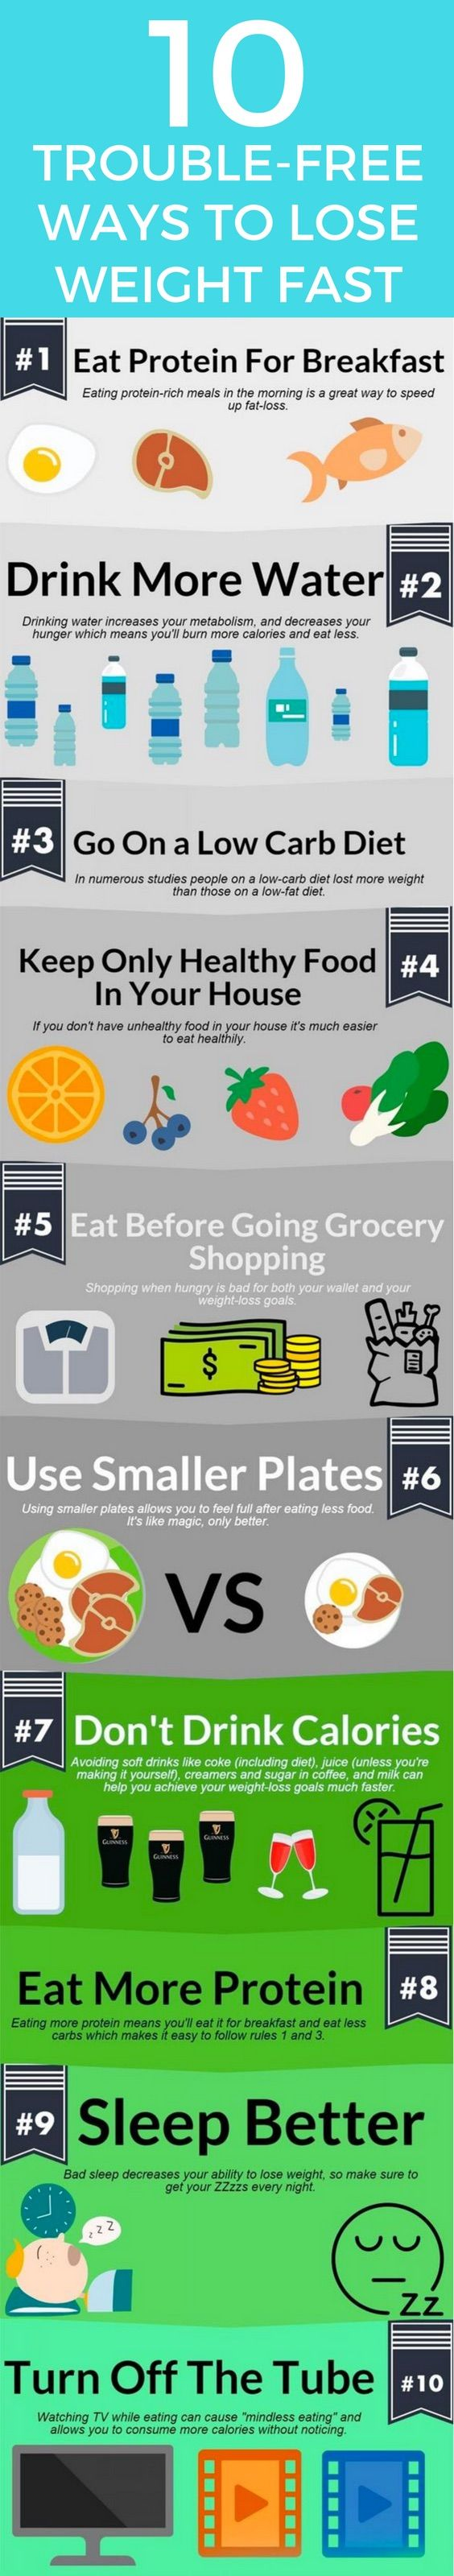 10 little effort ways to lose 20 pounds.